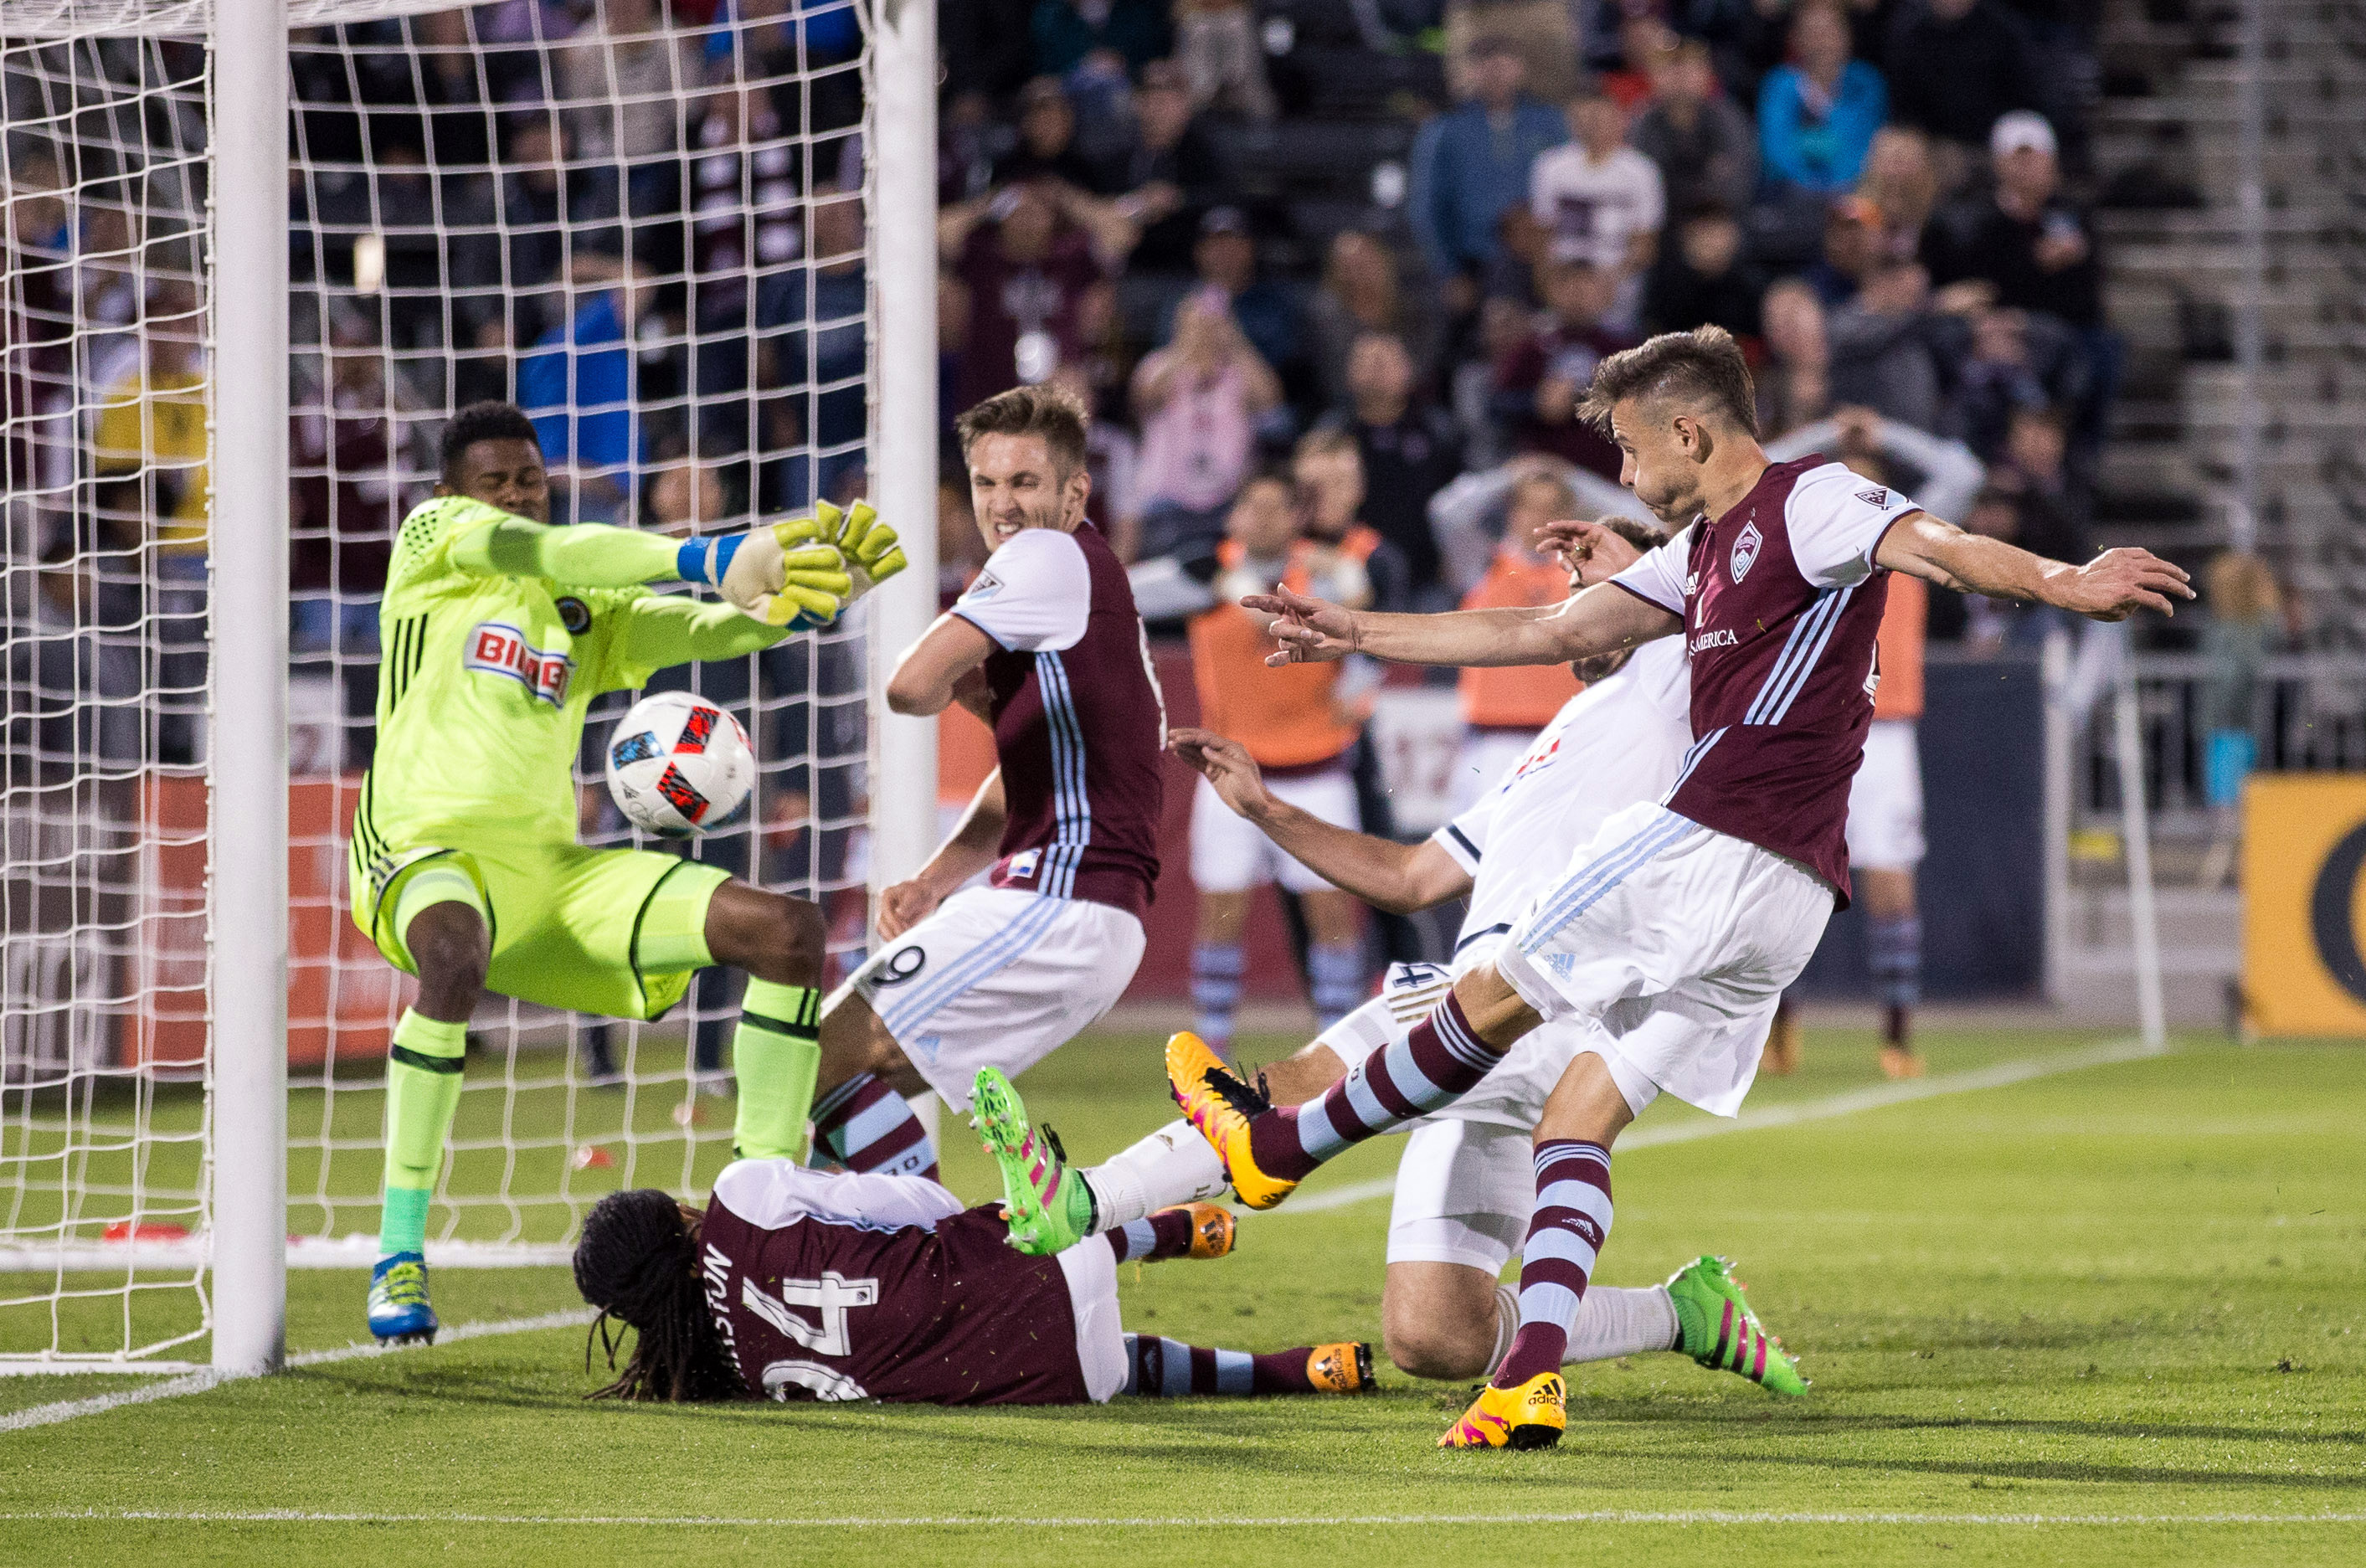 Luis Solignac shooting the ball into the net on the goal that was called back for offsides on Doyle.